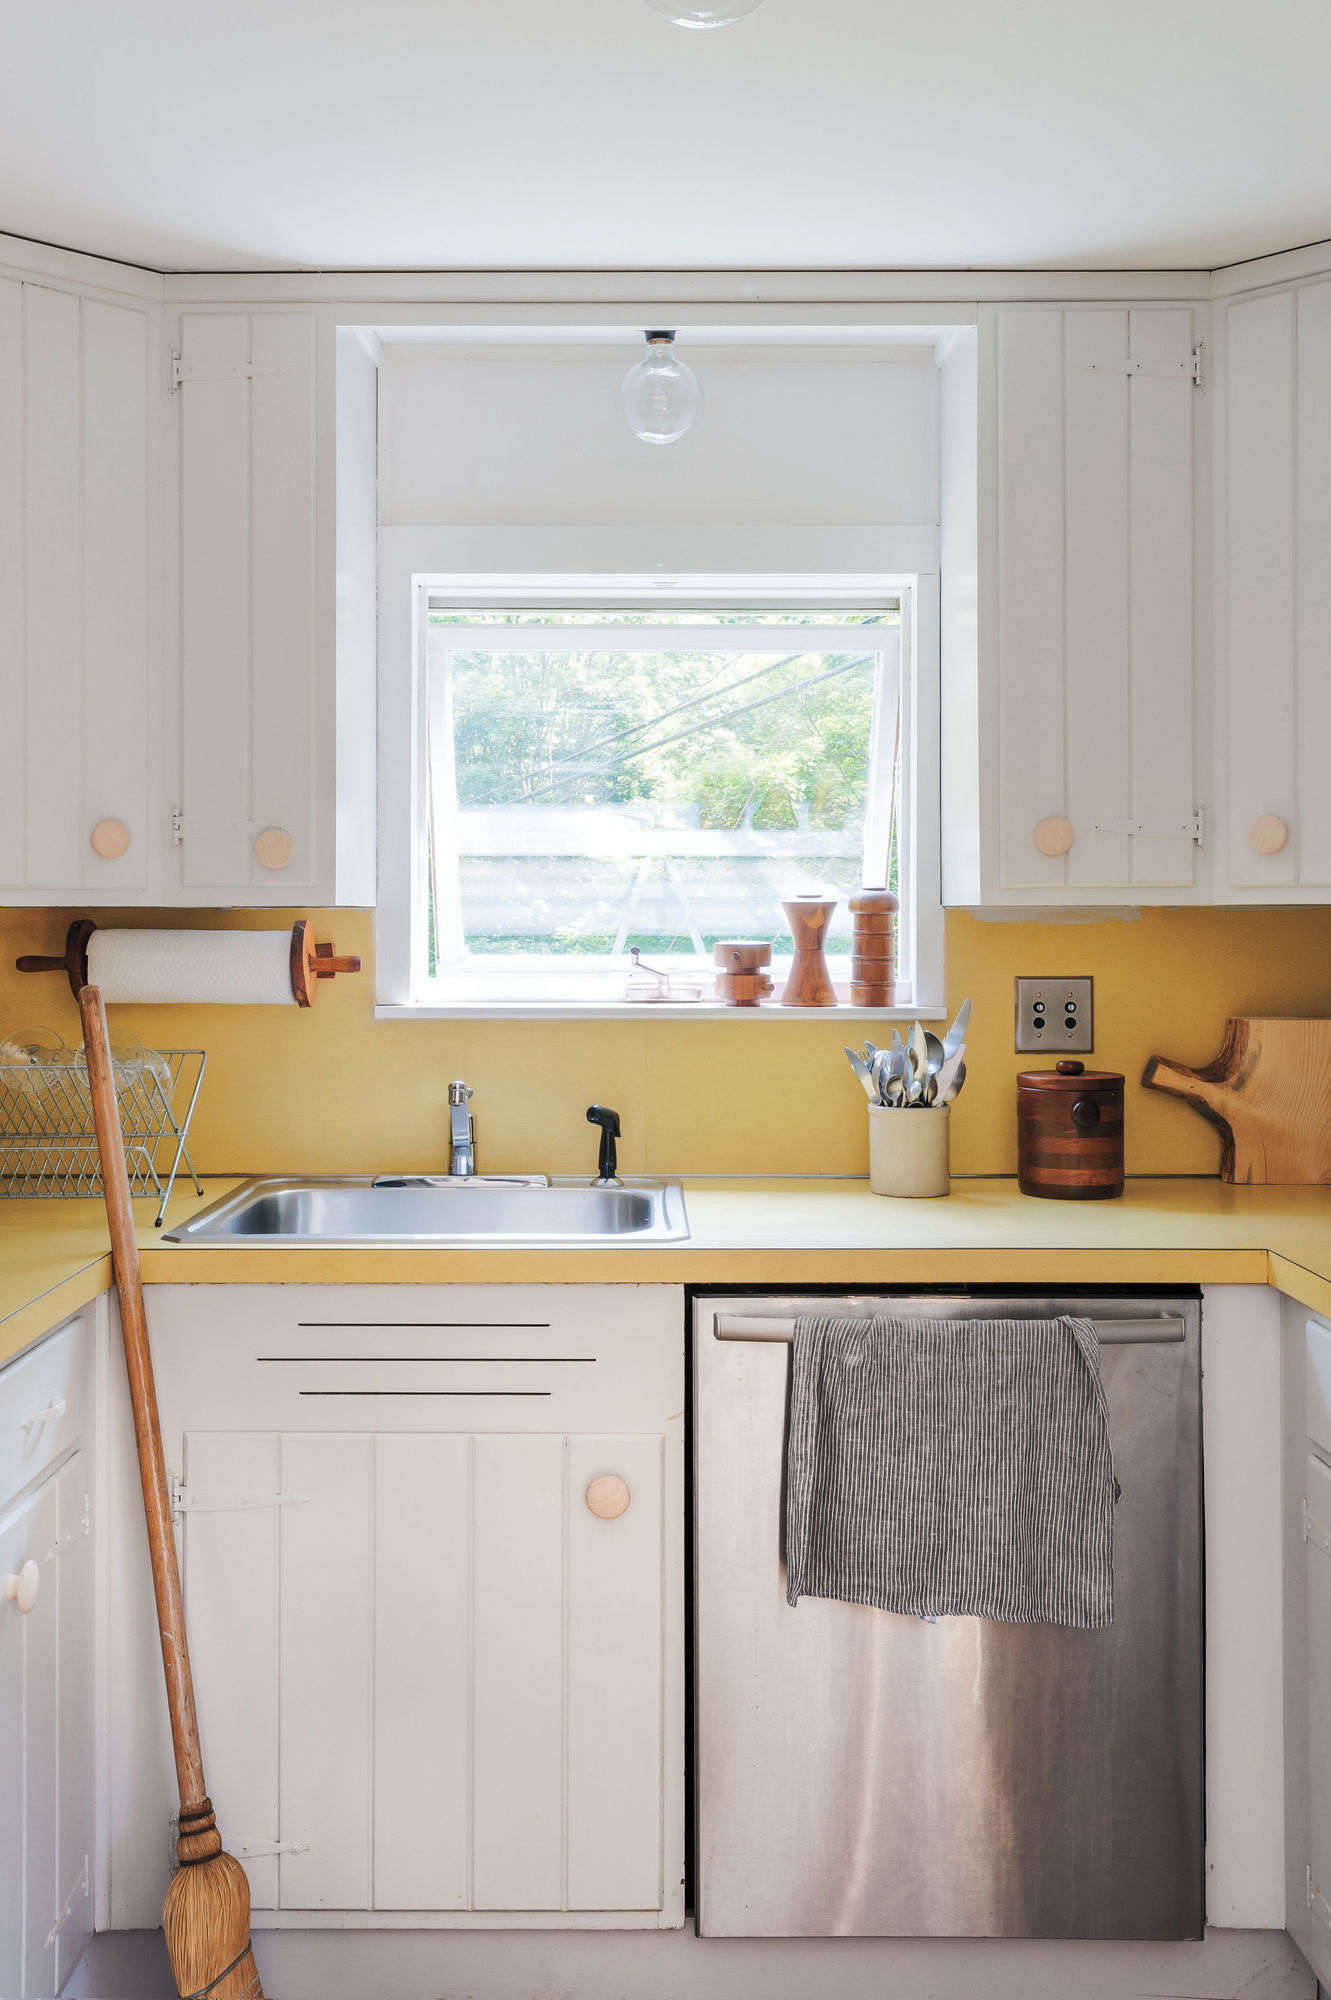 Expert Tips On Painting Your Kitchen Cabinets